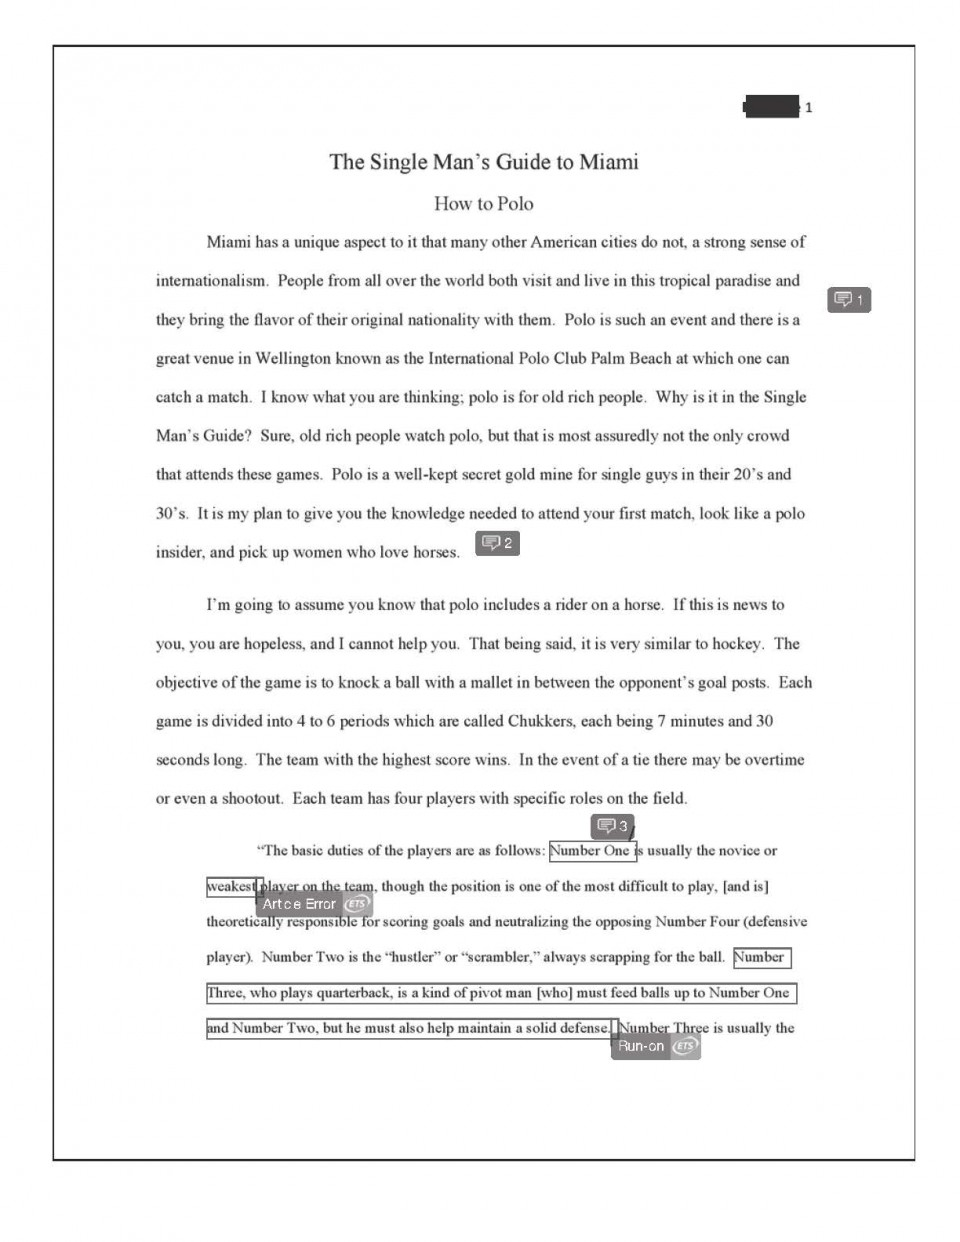 005 Informative Essay Topics Essays Sample Funny Argumentative For Middle School Final How To Polo Redacted P College Students Hilarious Good Remarkable 4th Grade Expository High 6th Graders 960